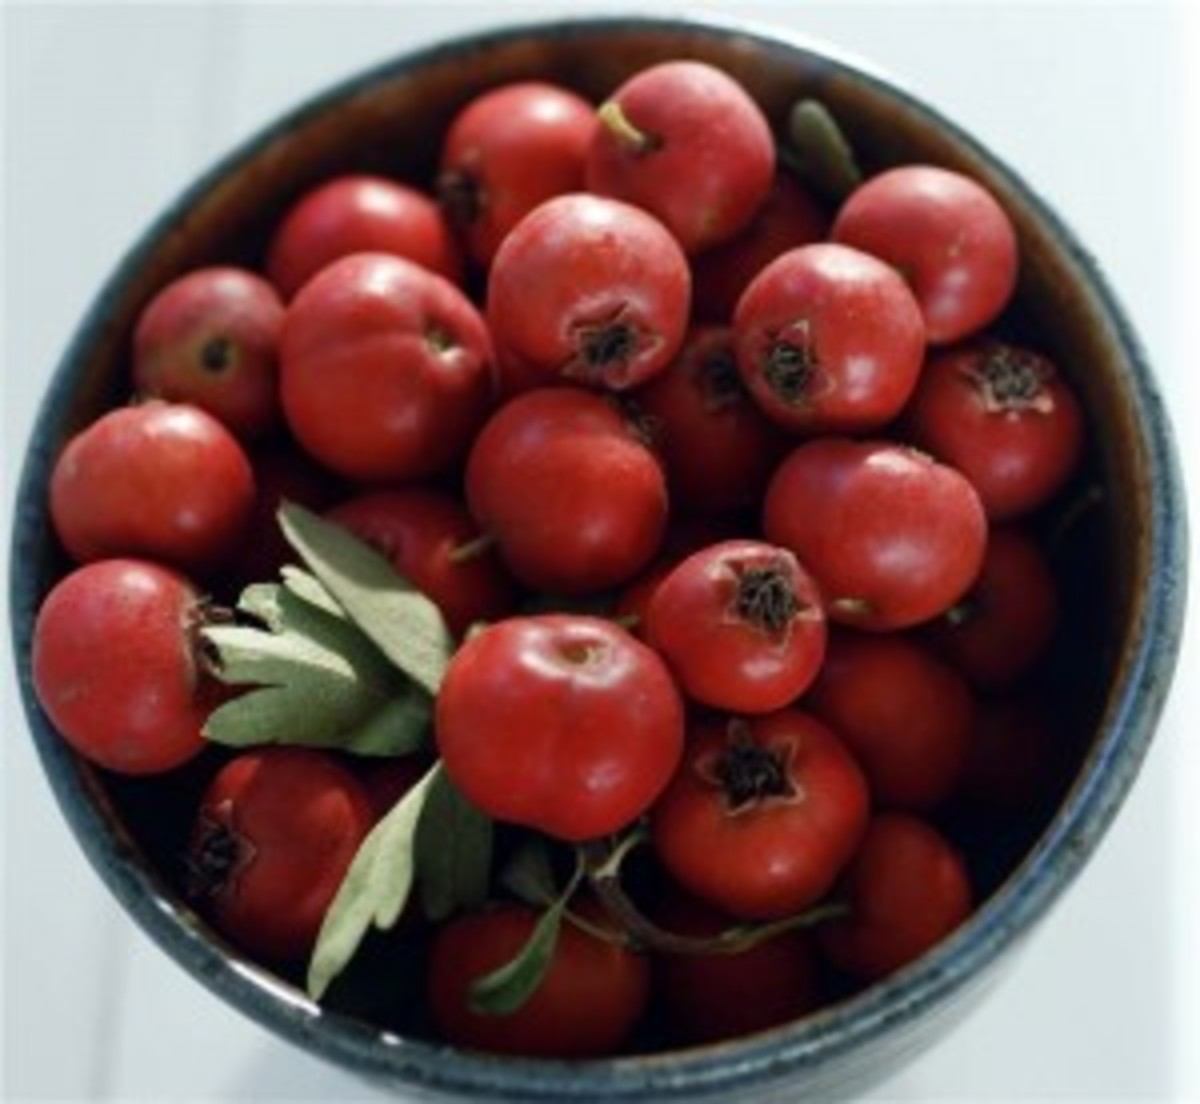 Hawthorn berries in a bowl.